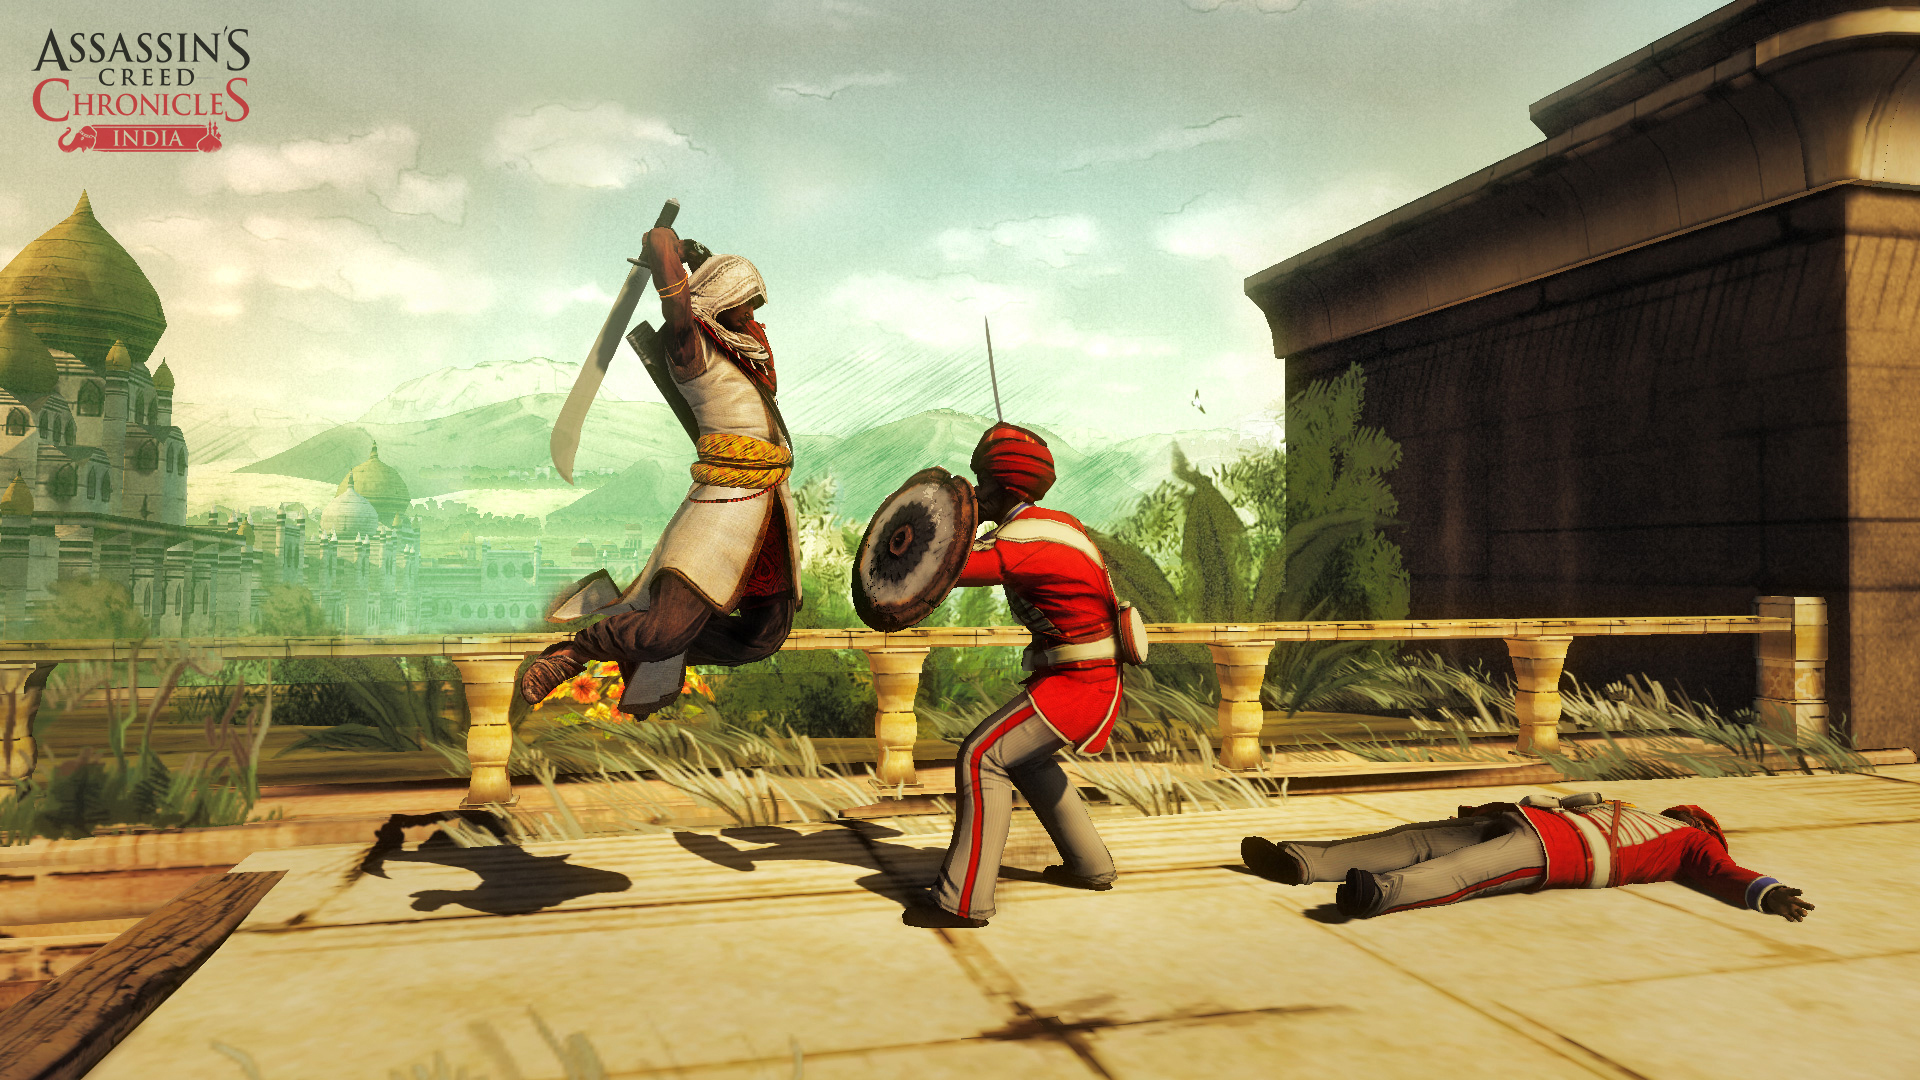 """Assassin's Creed Chronicles"" Visiting Russia and India in 2016 - A Bundle of the Three Games Will Also Be Available"